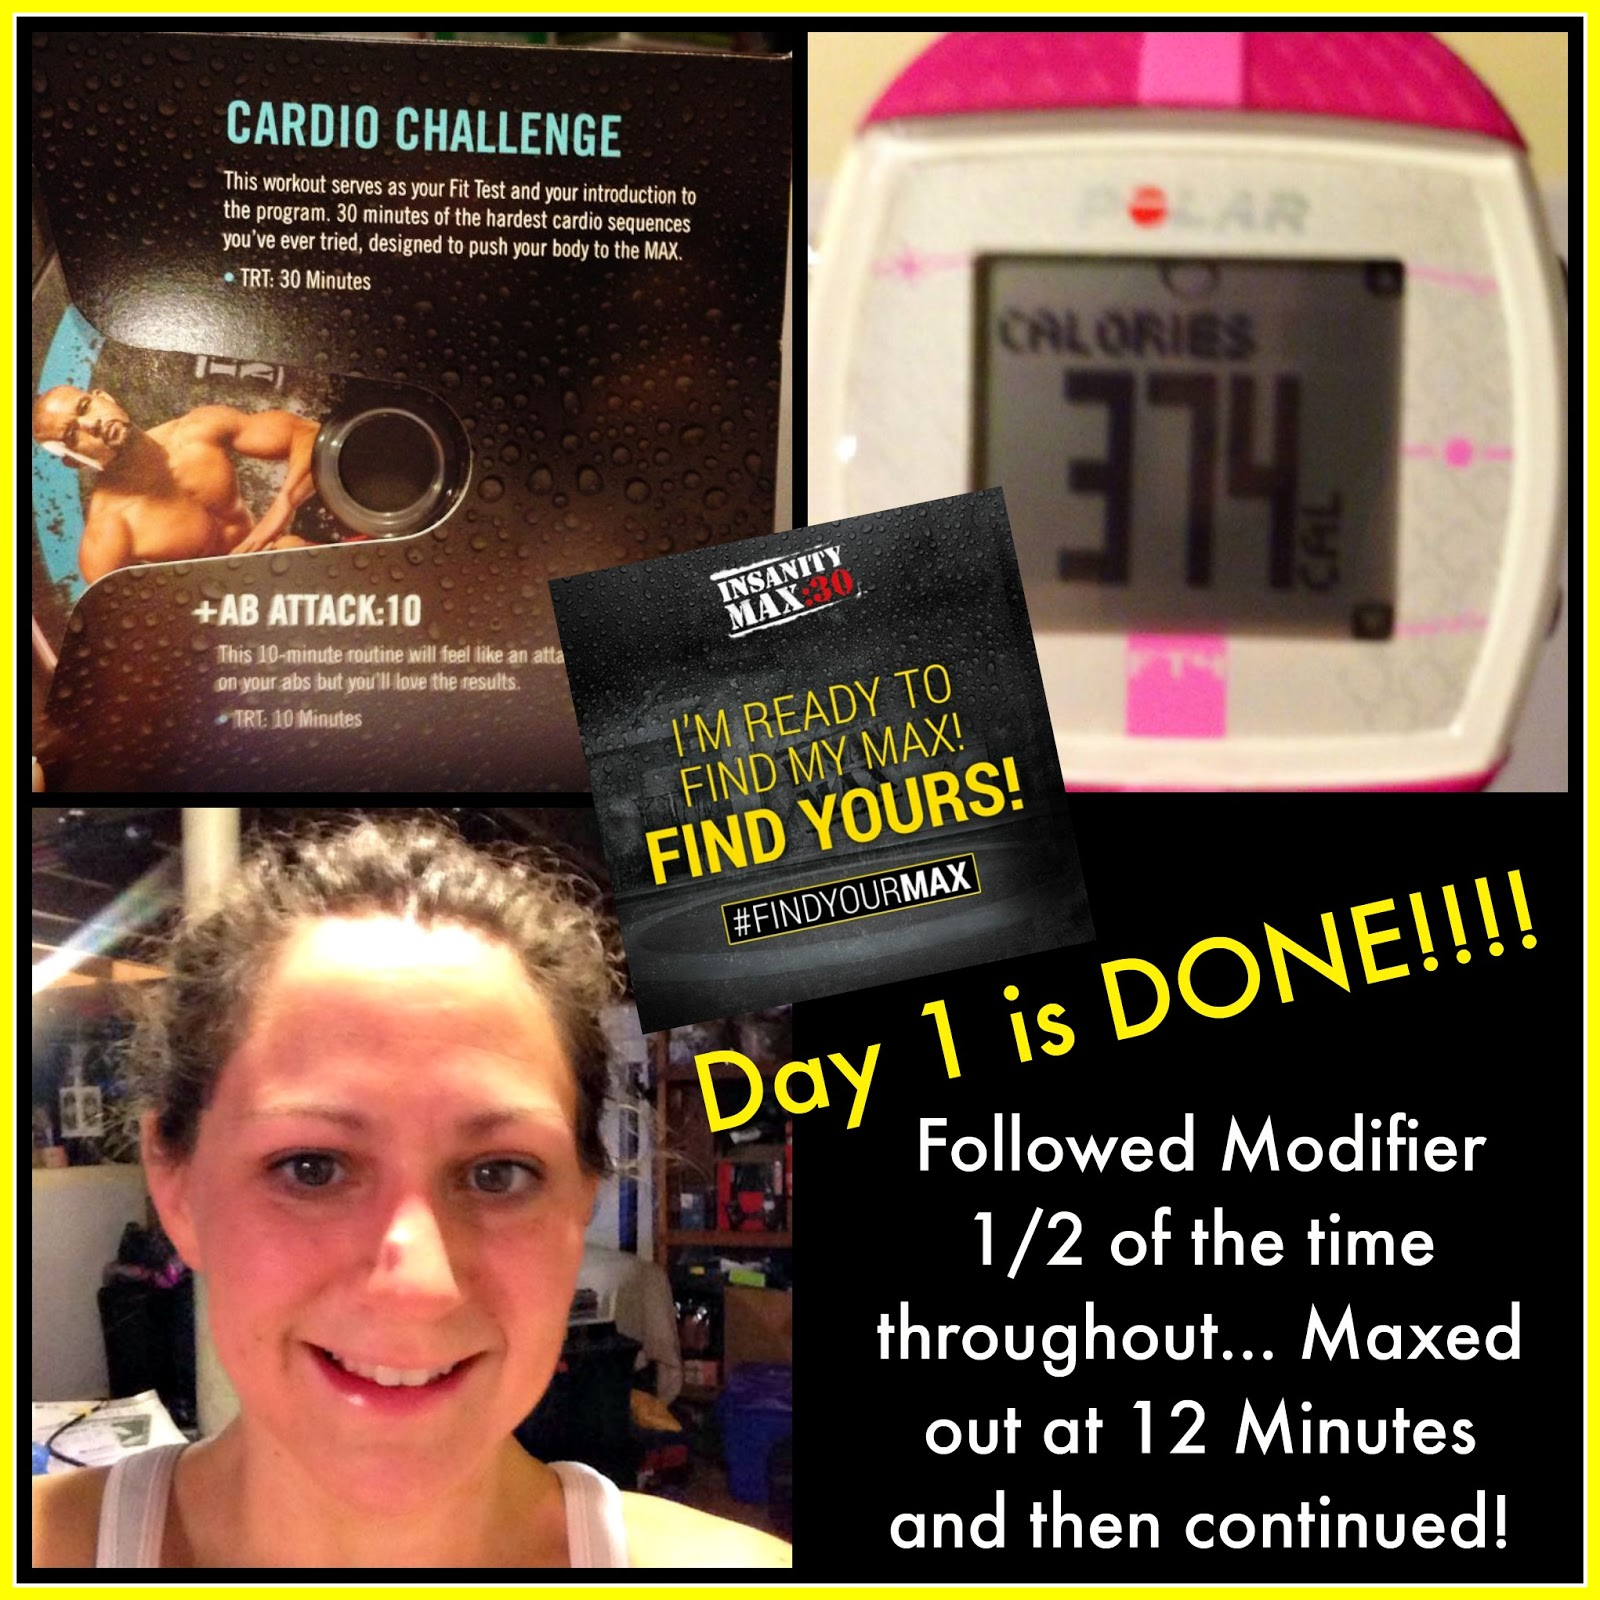 How Many Calories Does An Insanity Max 30 Workout Burn